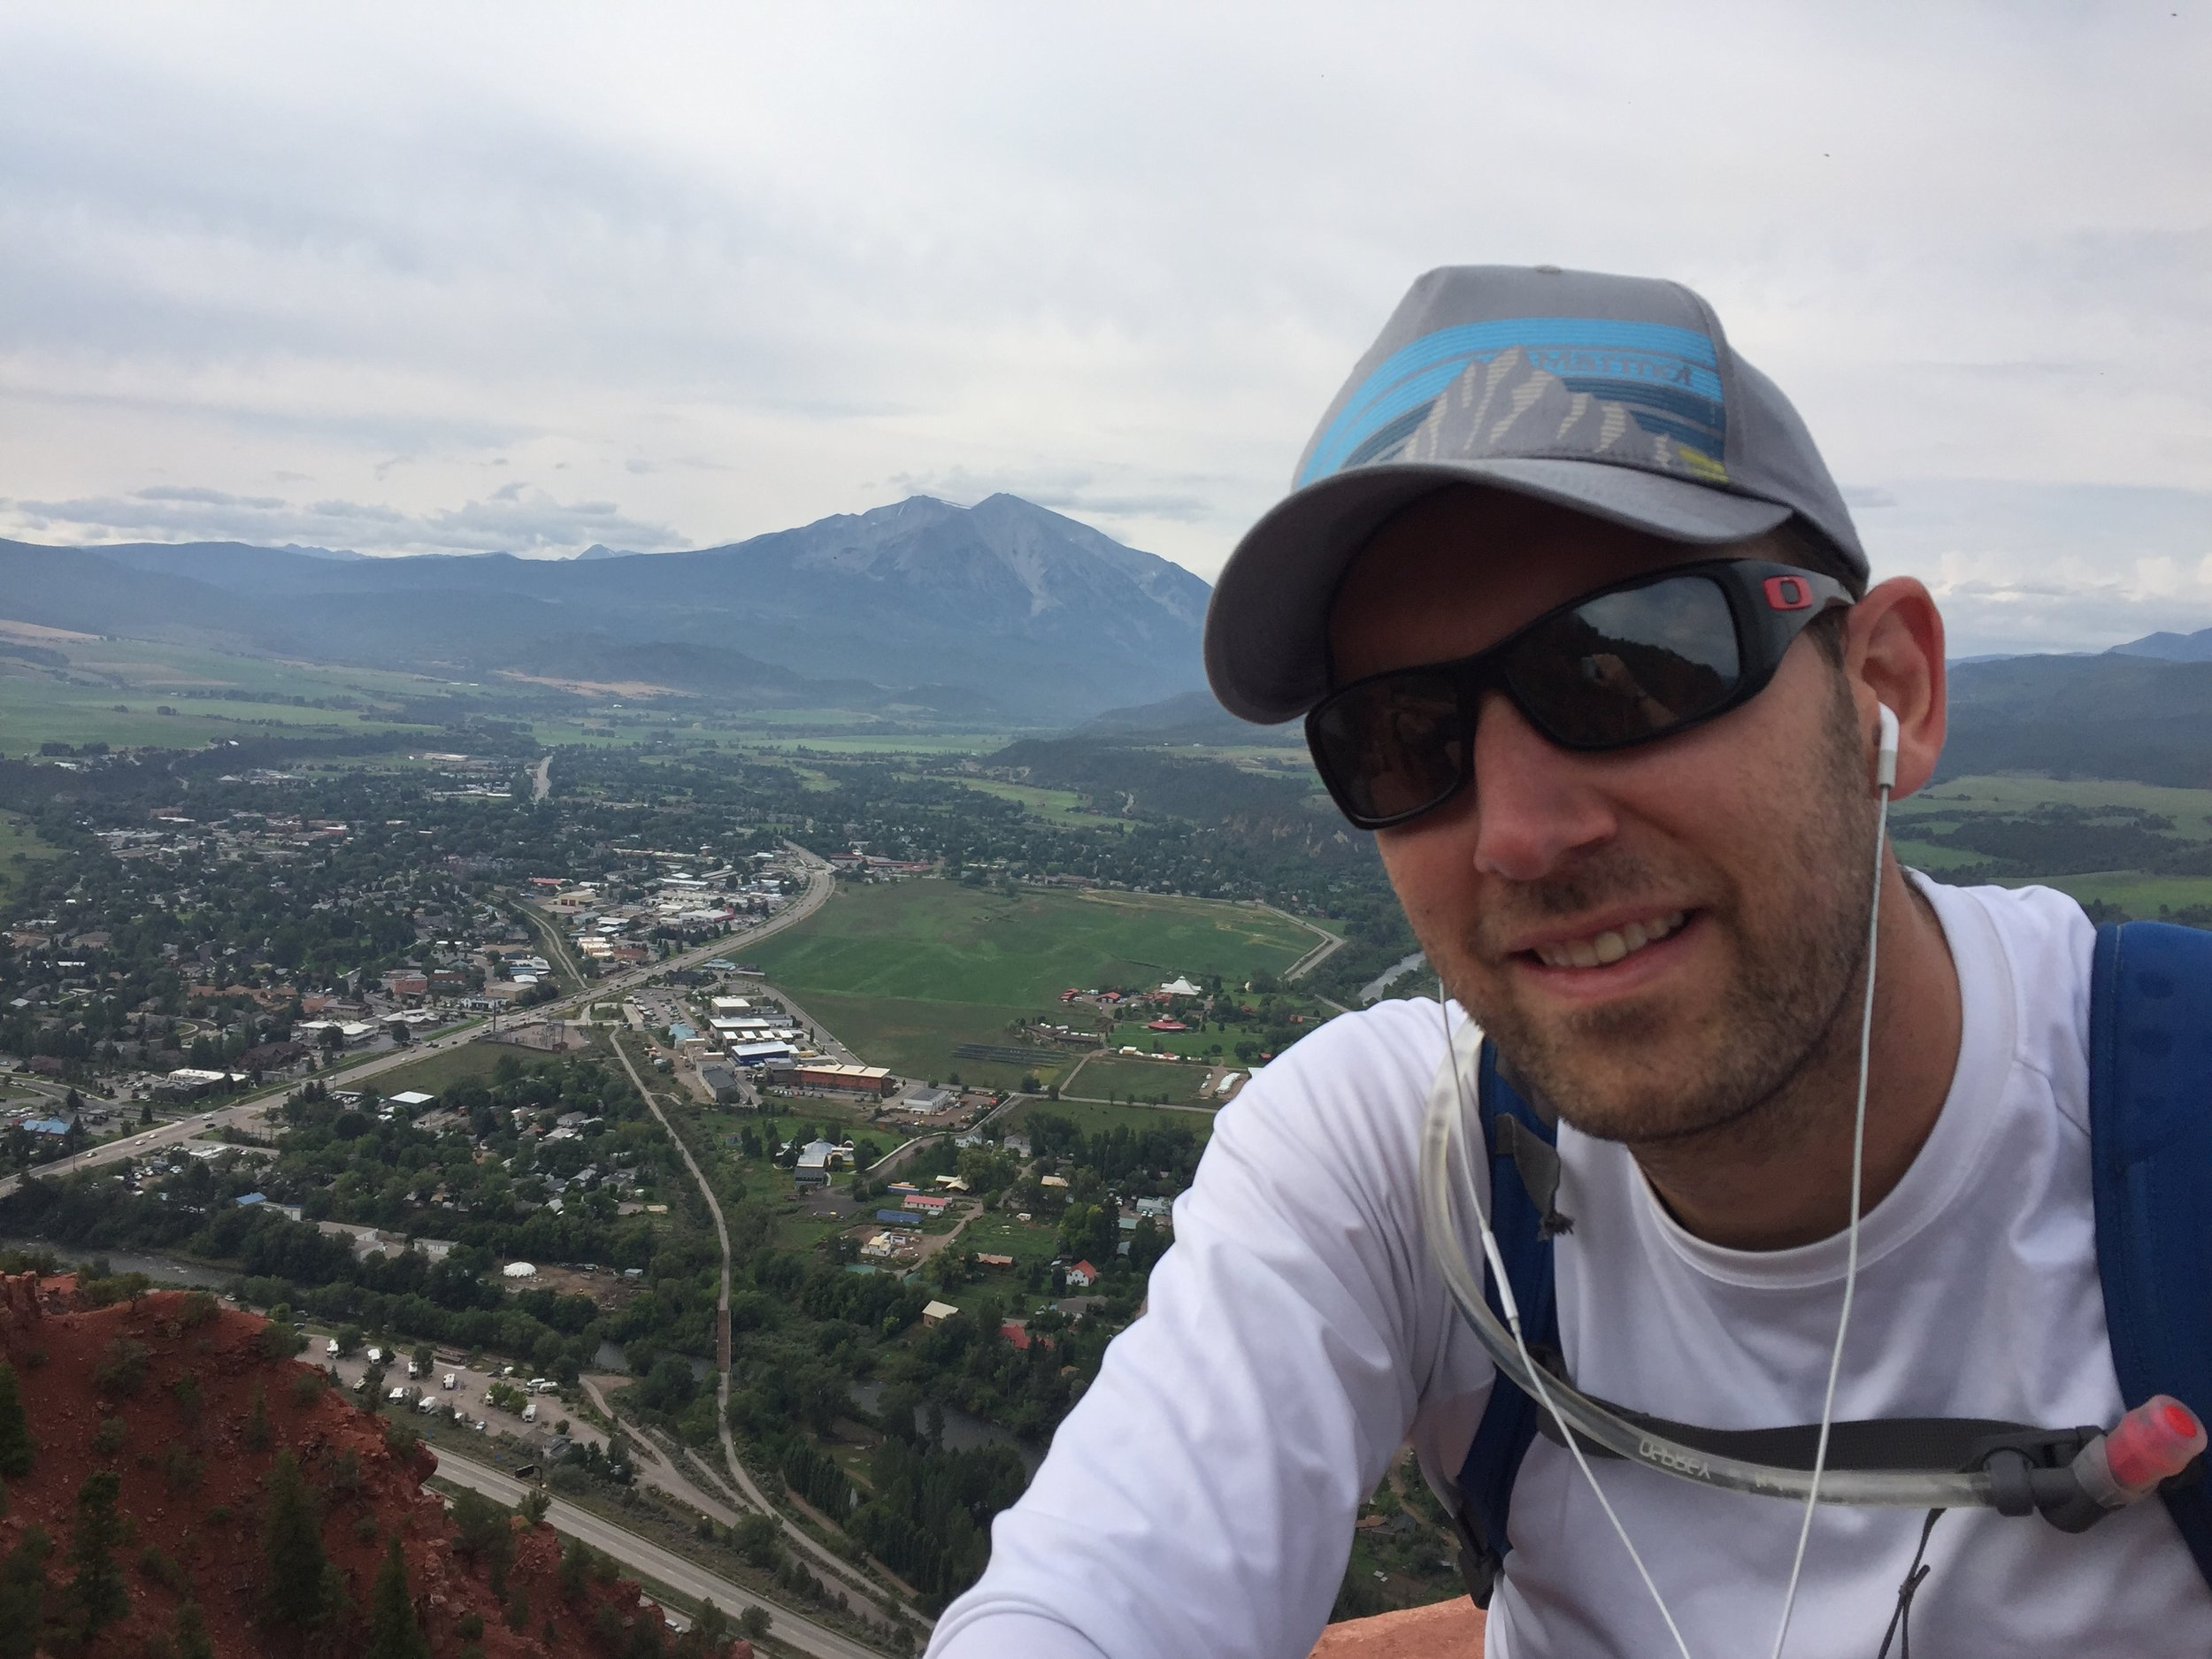 Brett Krudener pictured atop Mushroom Rock with the Town of Carbondale in the background.